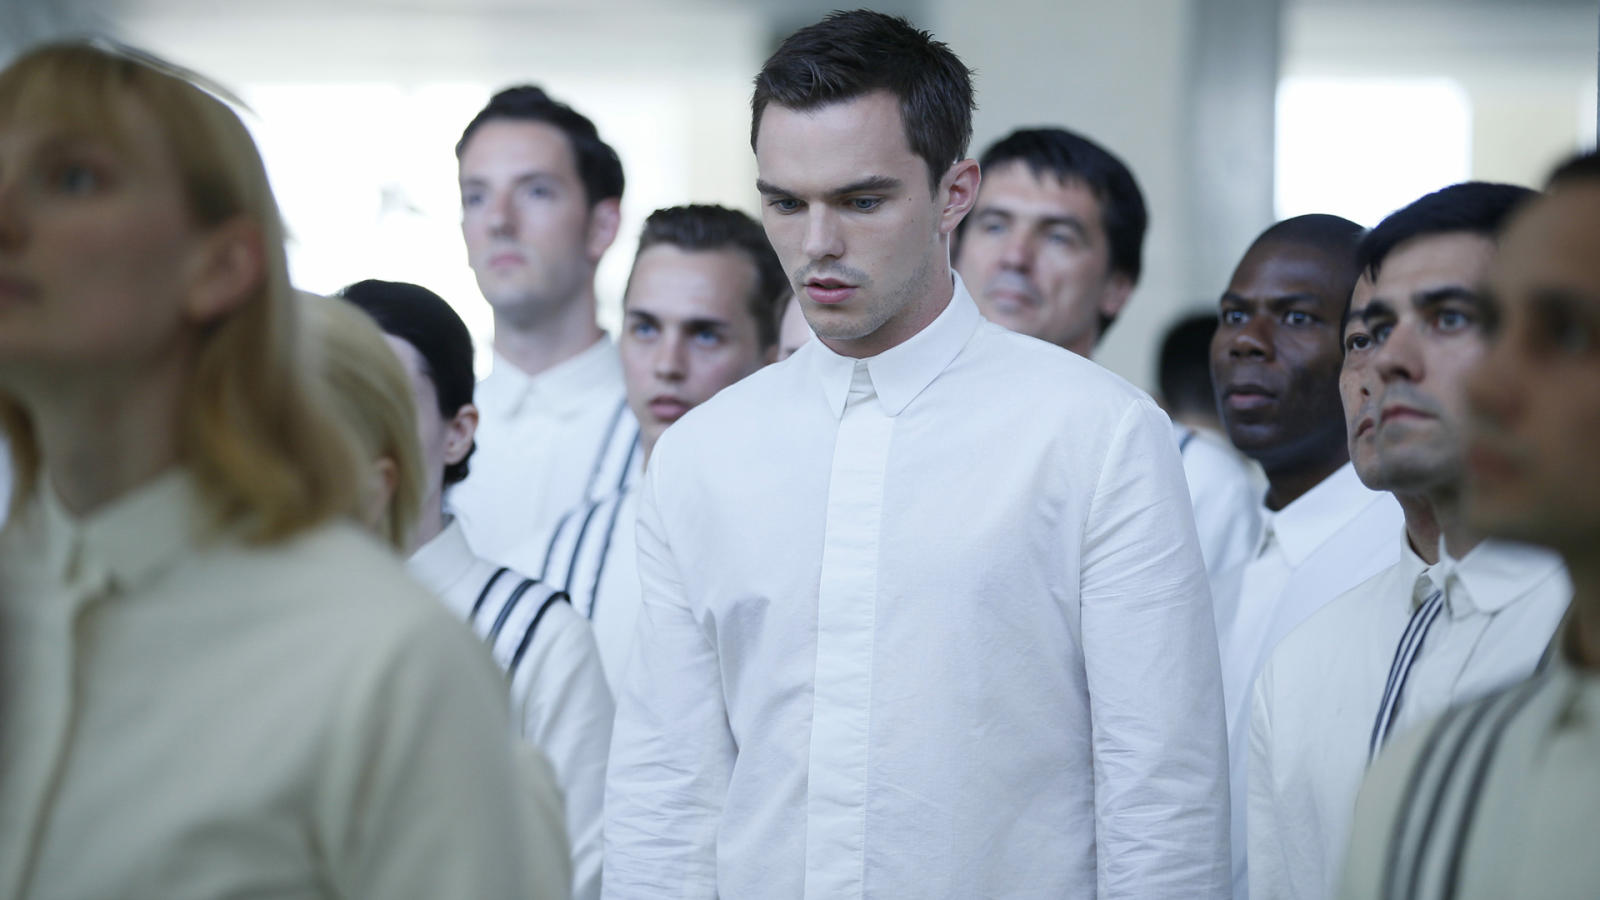 The increasingly underrated Nicholas Hoult (c) as the love interest Silas in Equals (2015)